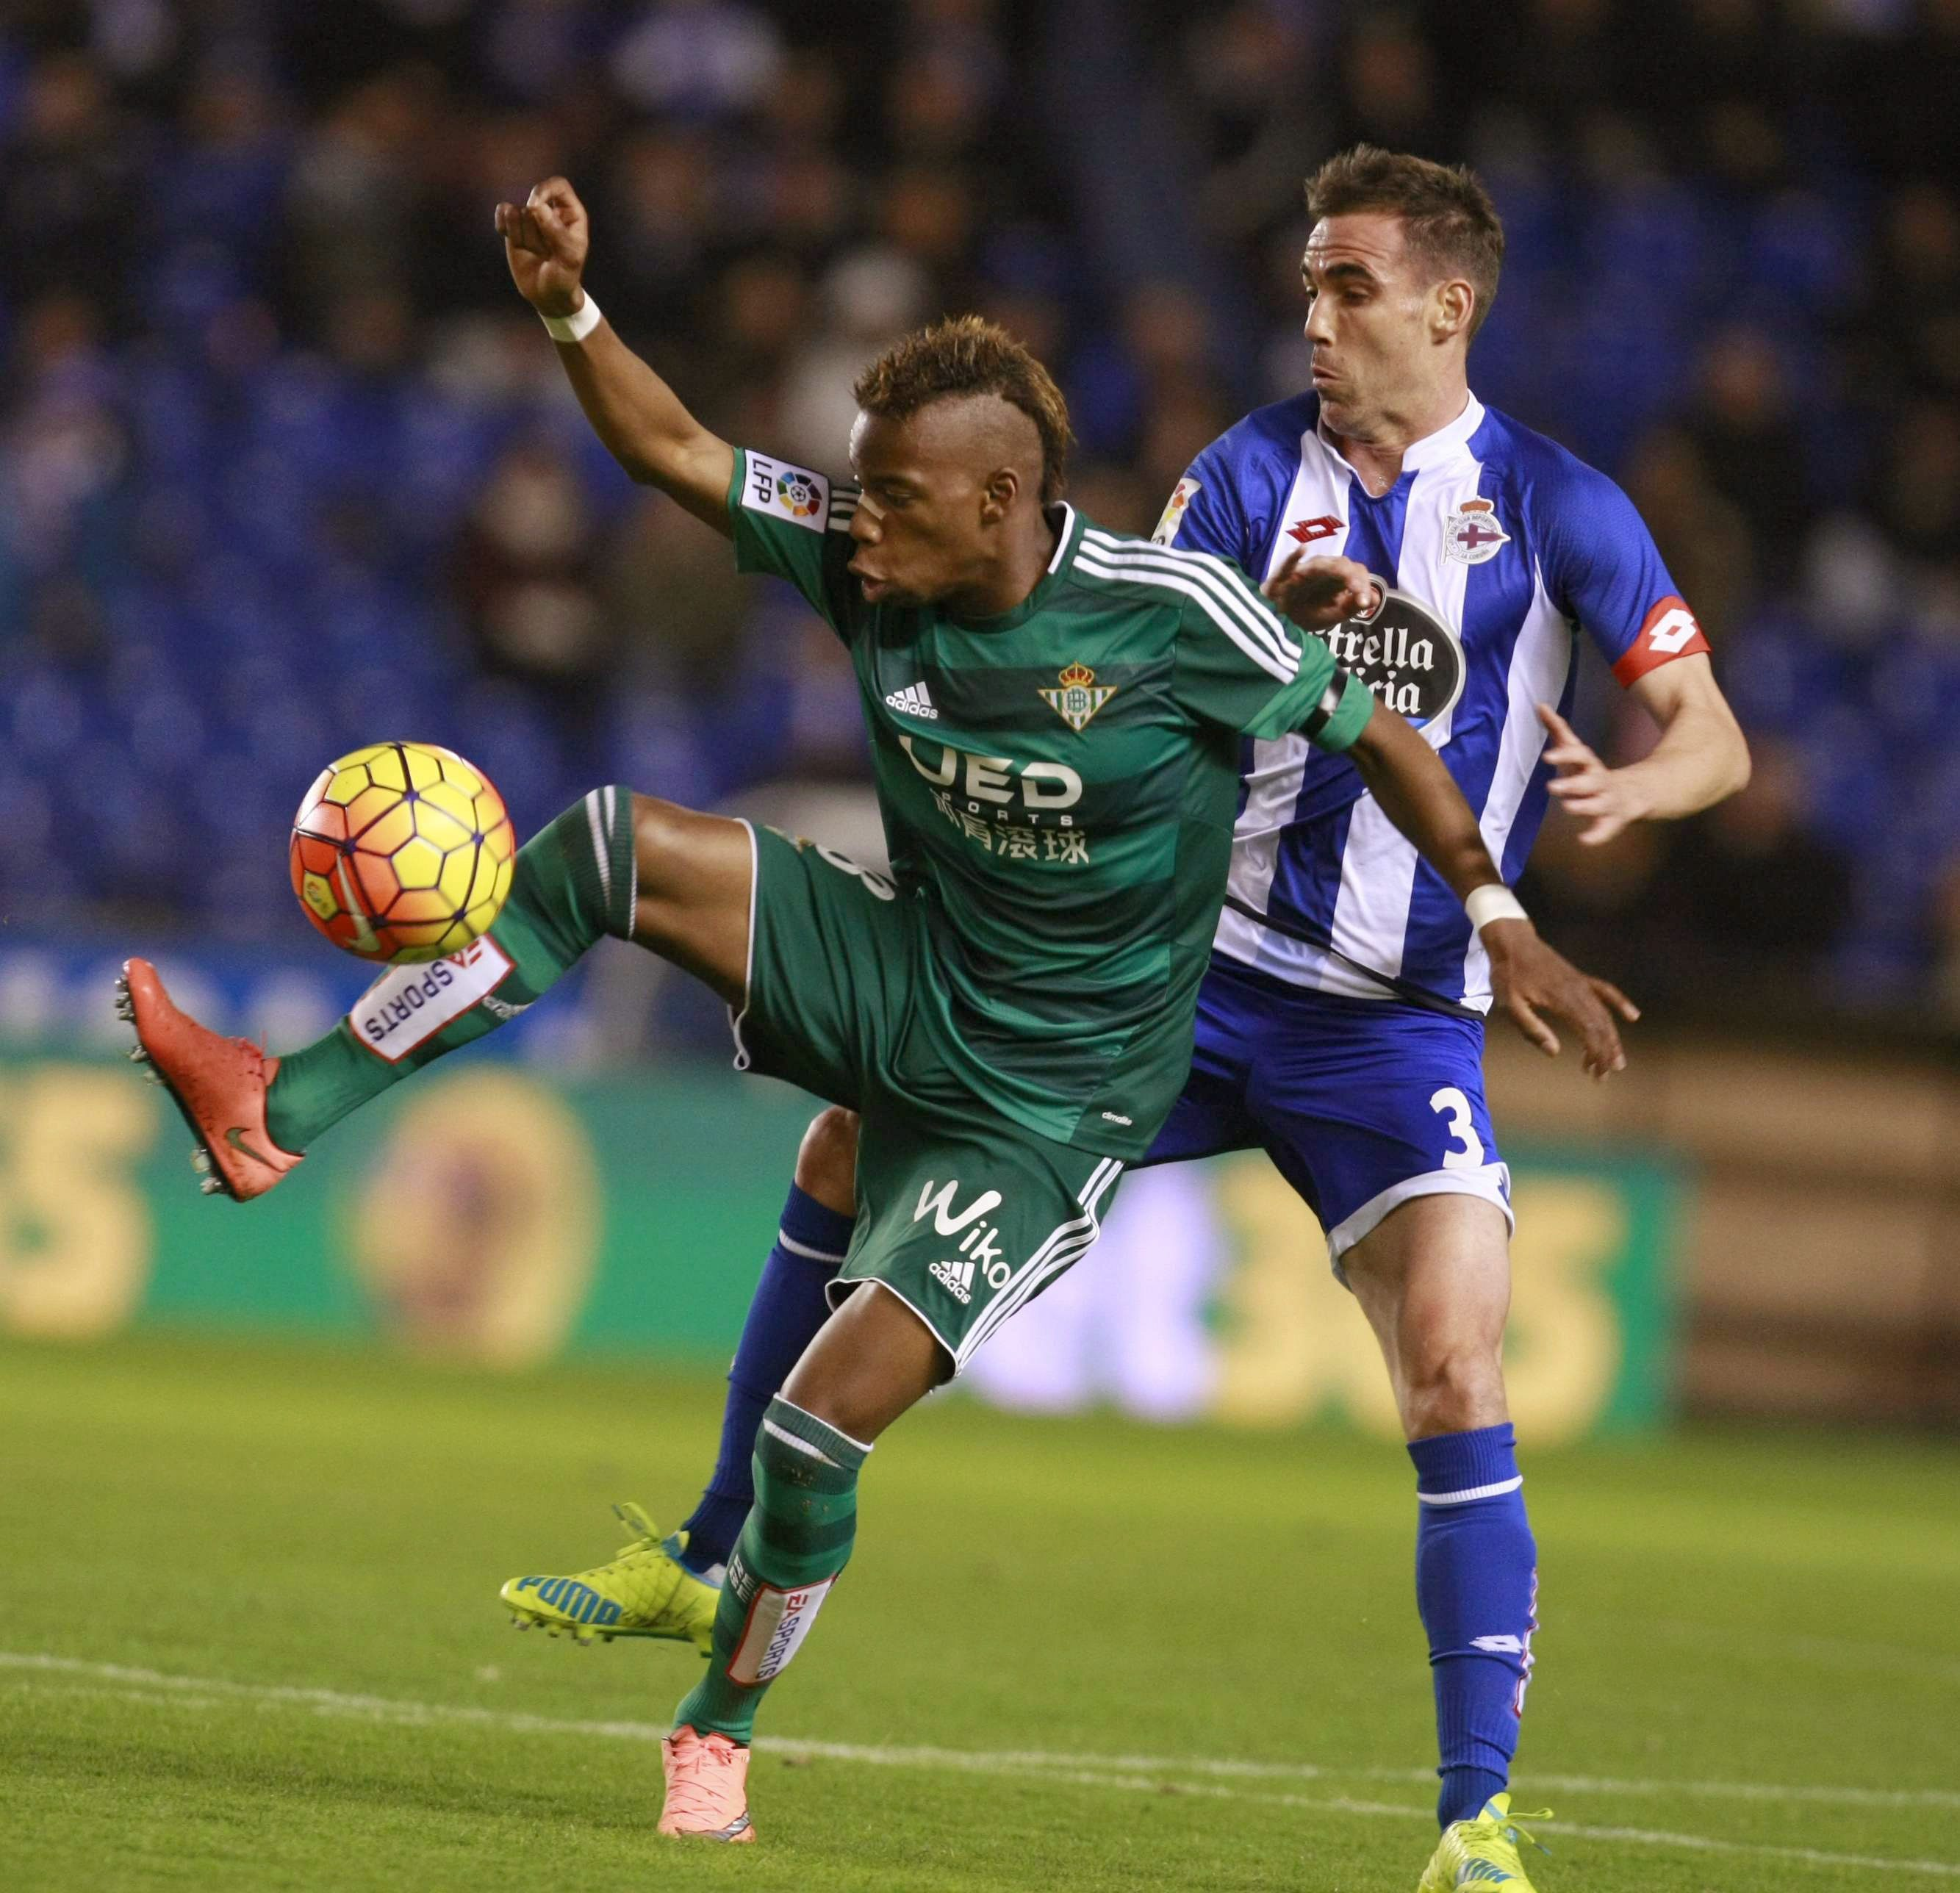 epa05159182 Deportivo's Fernando Navarro (R) fights for the ball with Real Betis' Belgian Charly Musonda during their Spanish Primera Division soccer match at Riazor stadium in A Coruna, Galicia, northwestern Spain, 13 February 2016.  EPA/CABALAR